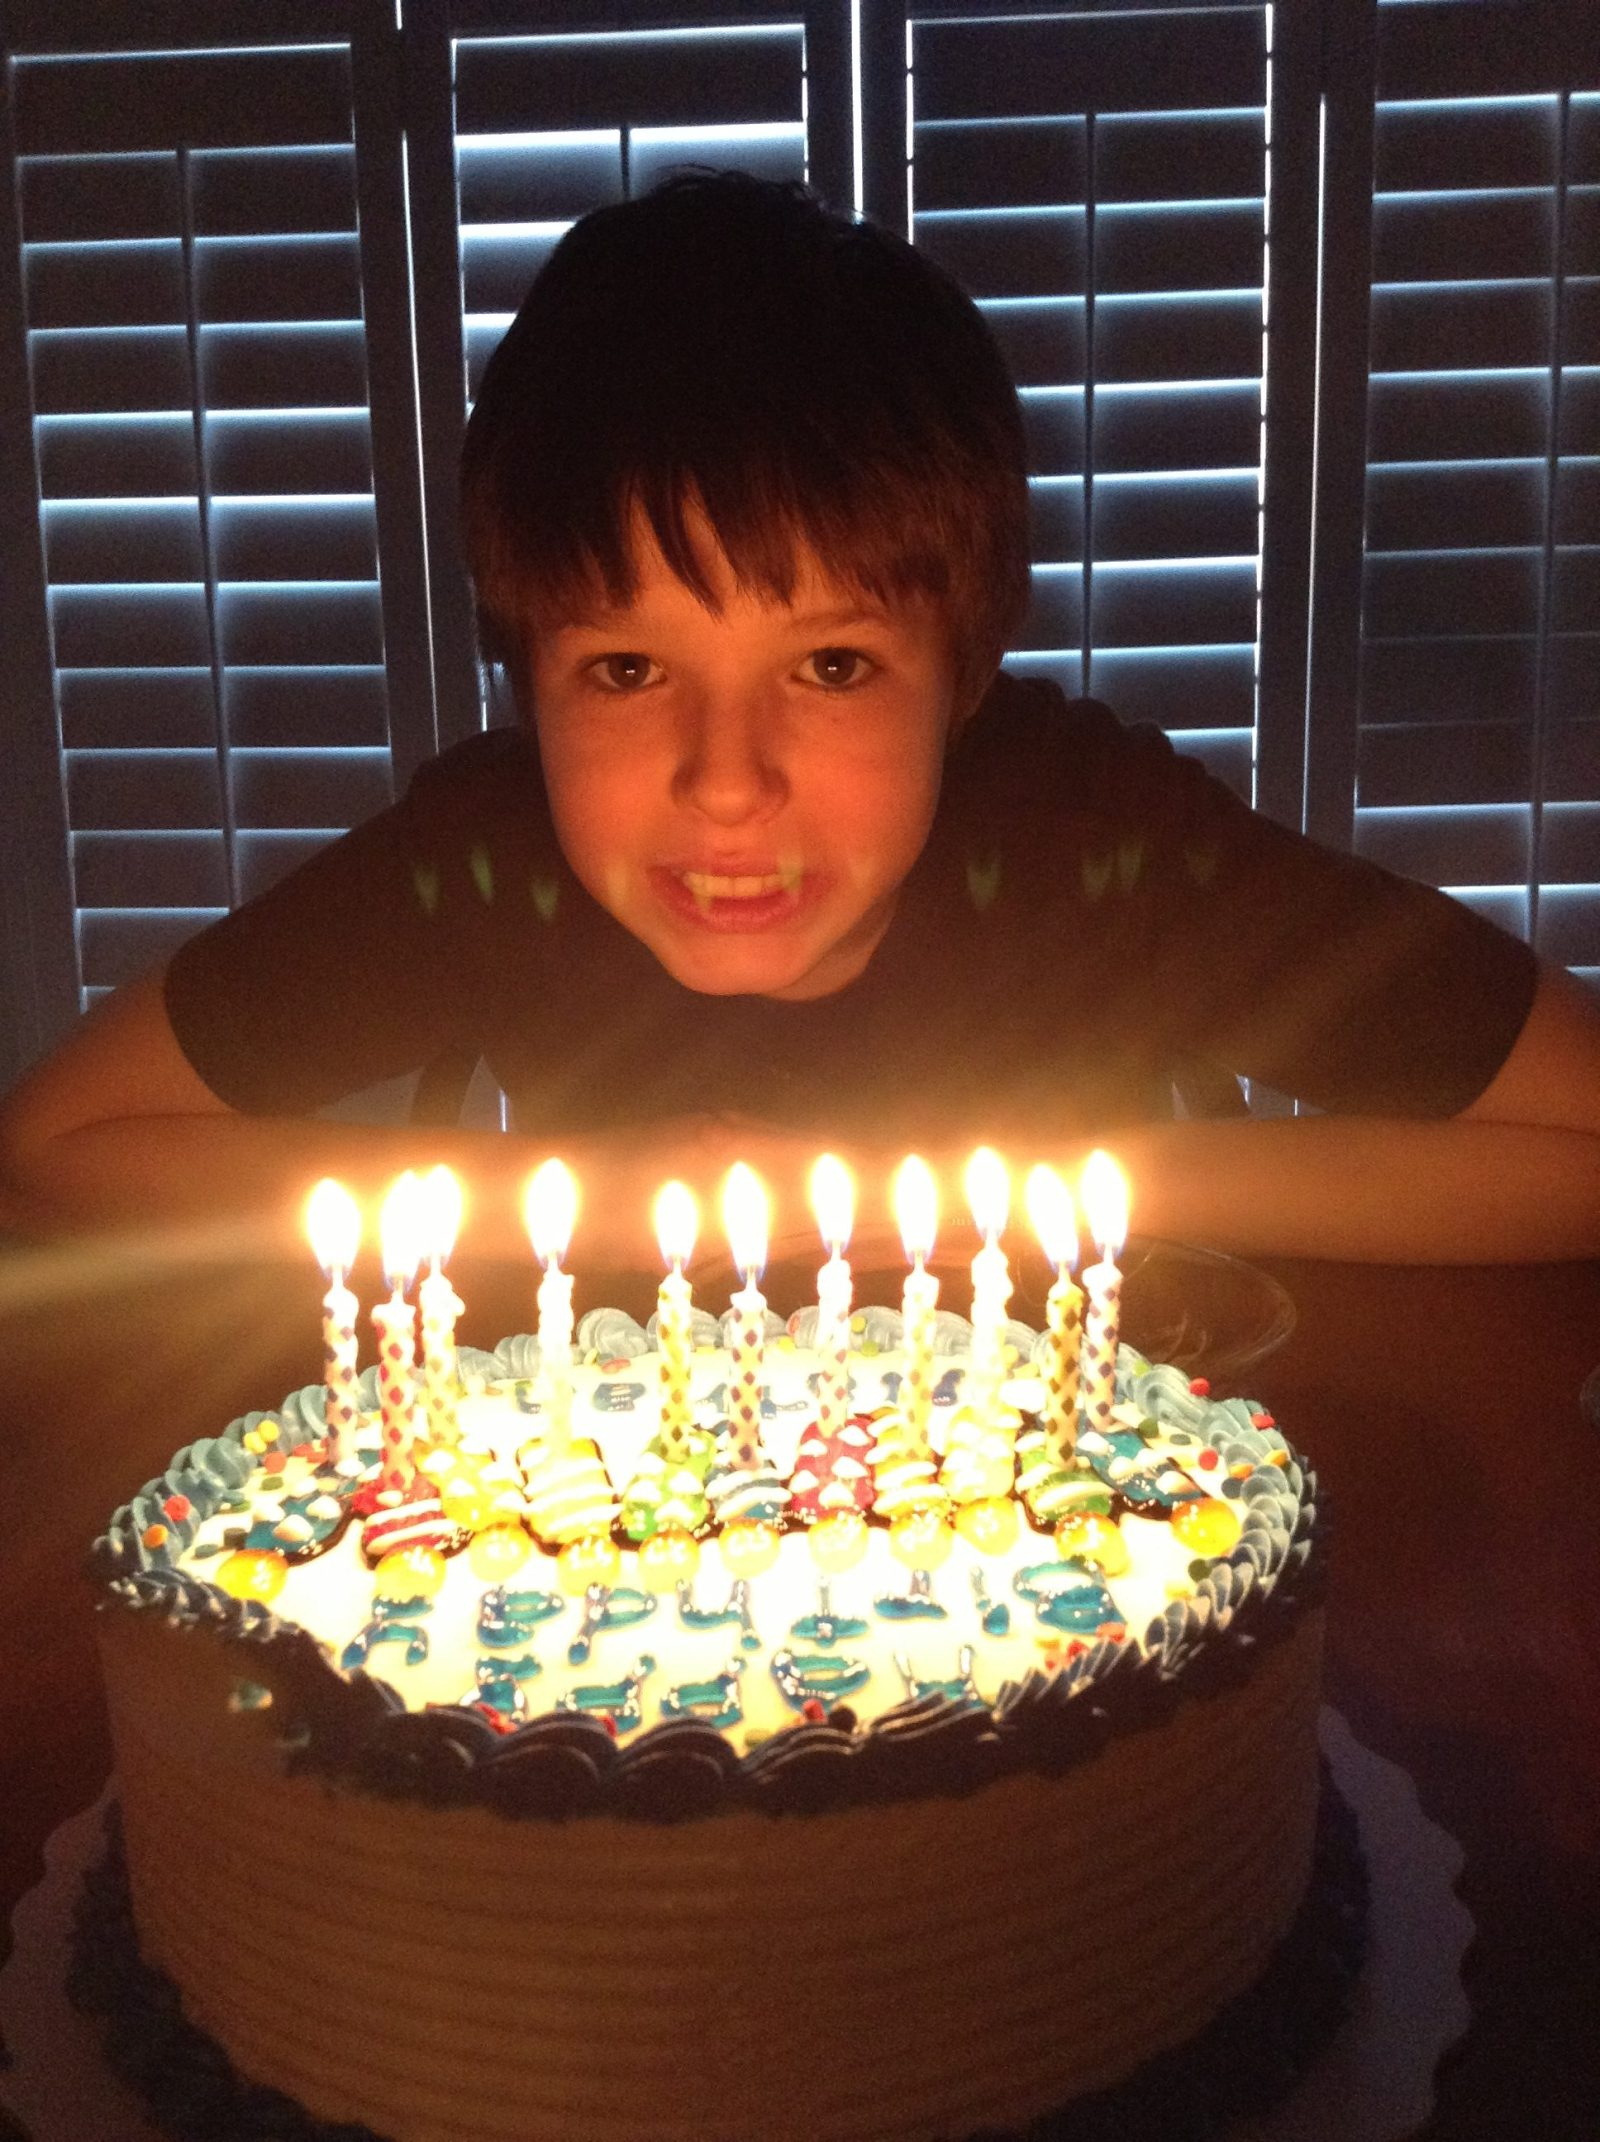 The Birthday Cake Lessons from Oppositional Defiant Disorder NeurologicallyGifted.com